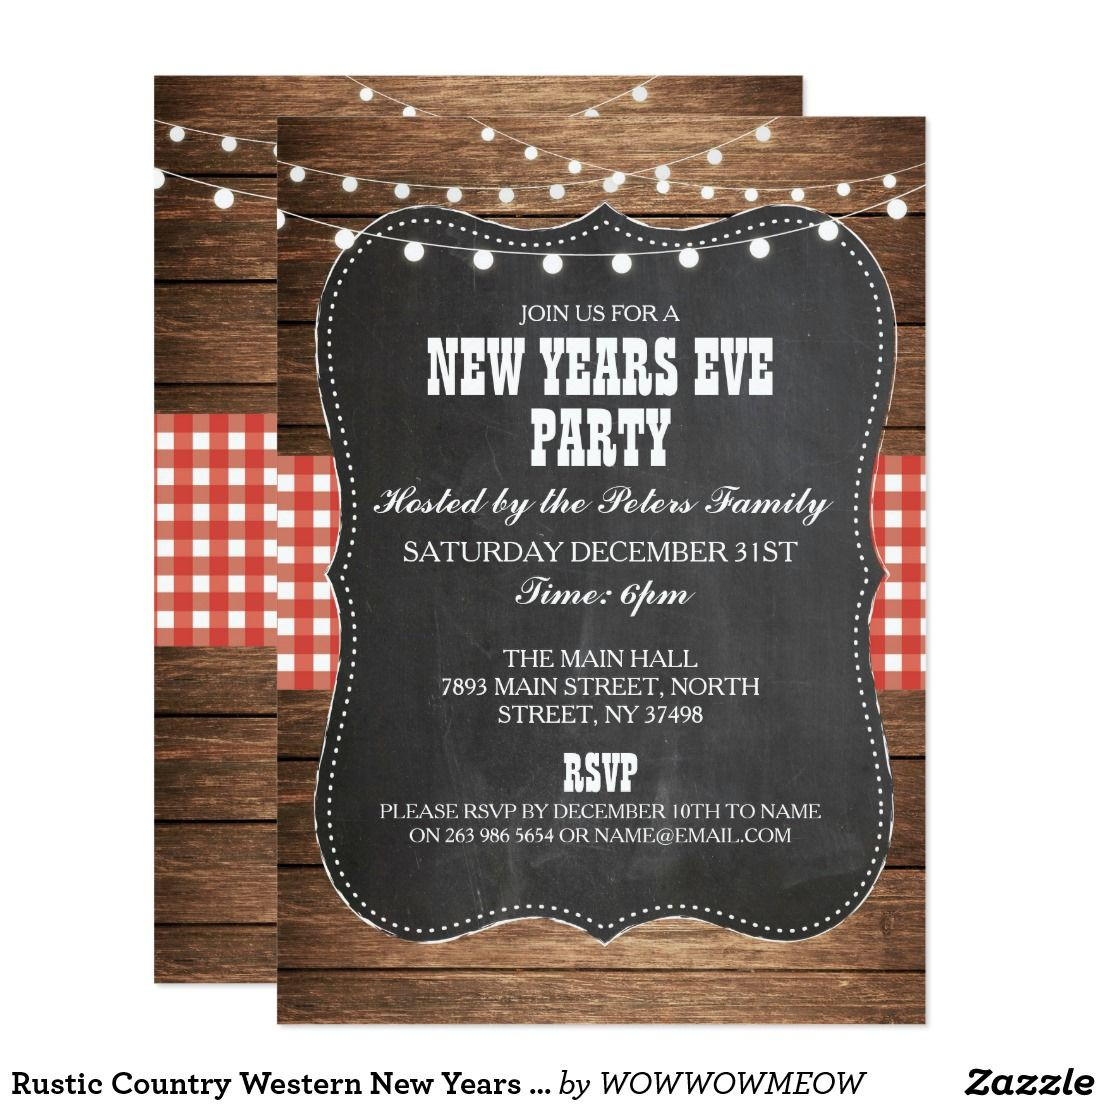 Rustic Country Western New Years Eve Party Invite Zazzle Com Western Christmas Party Invitations Christmas Party Host